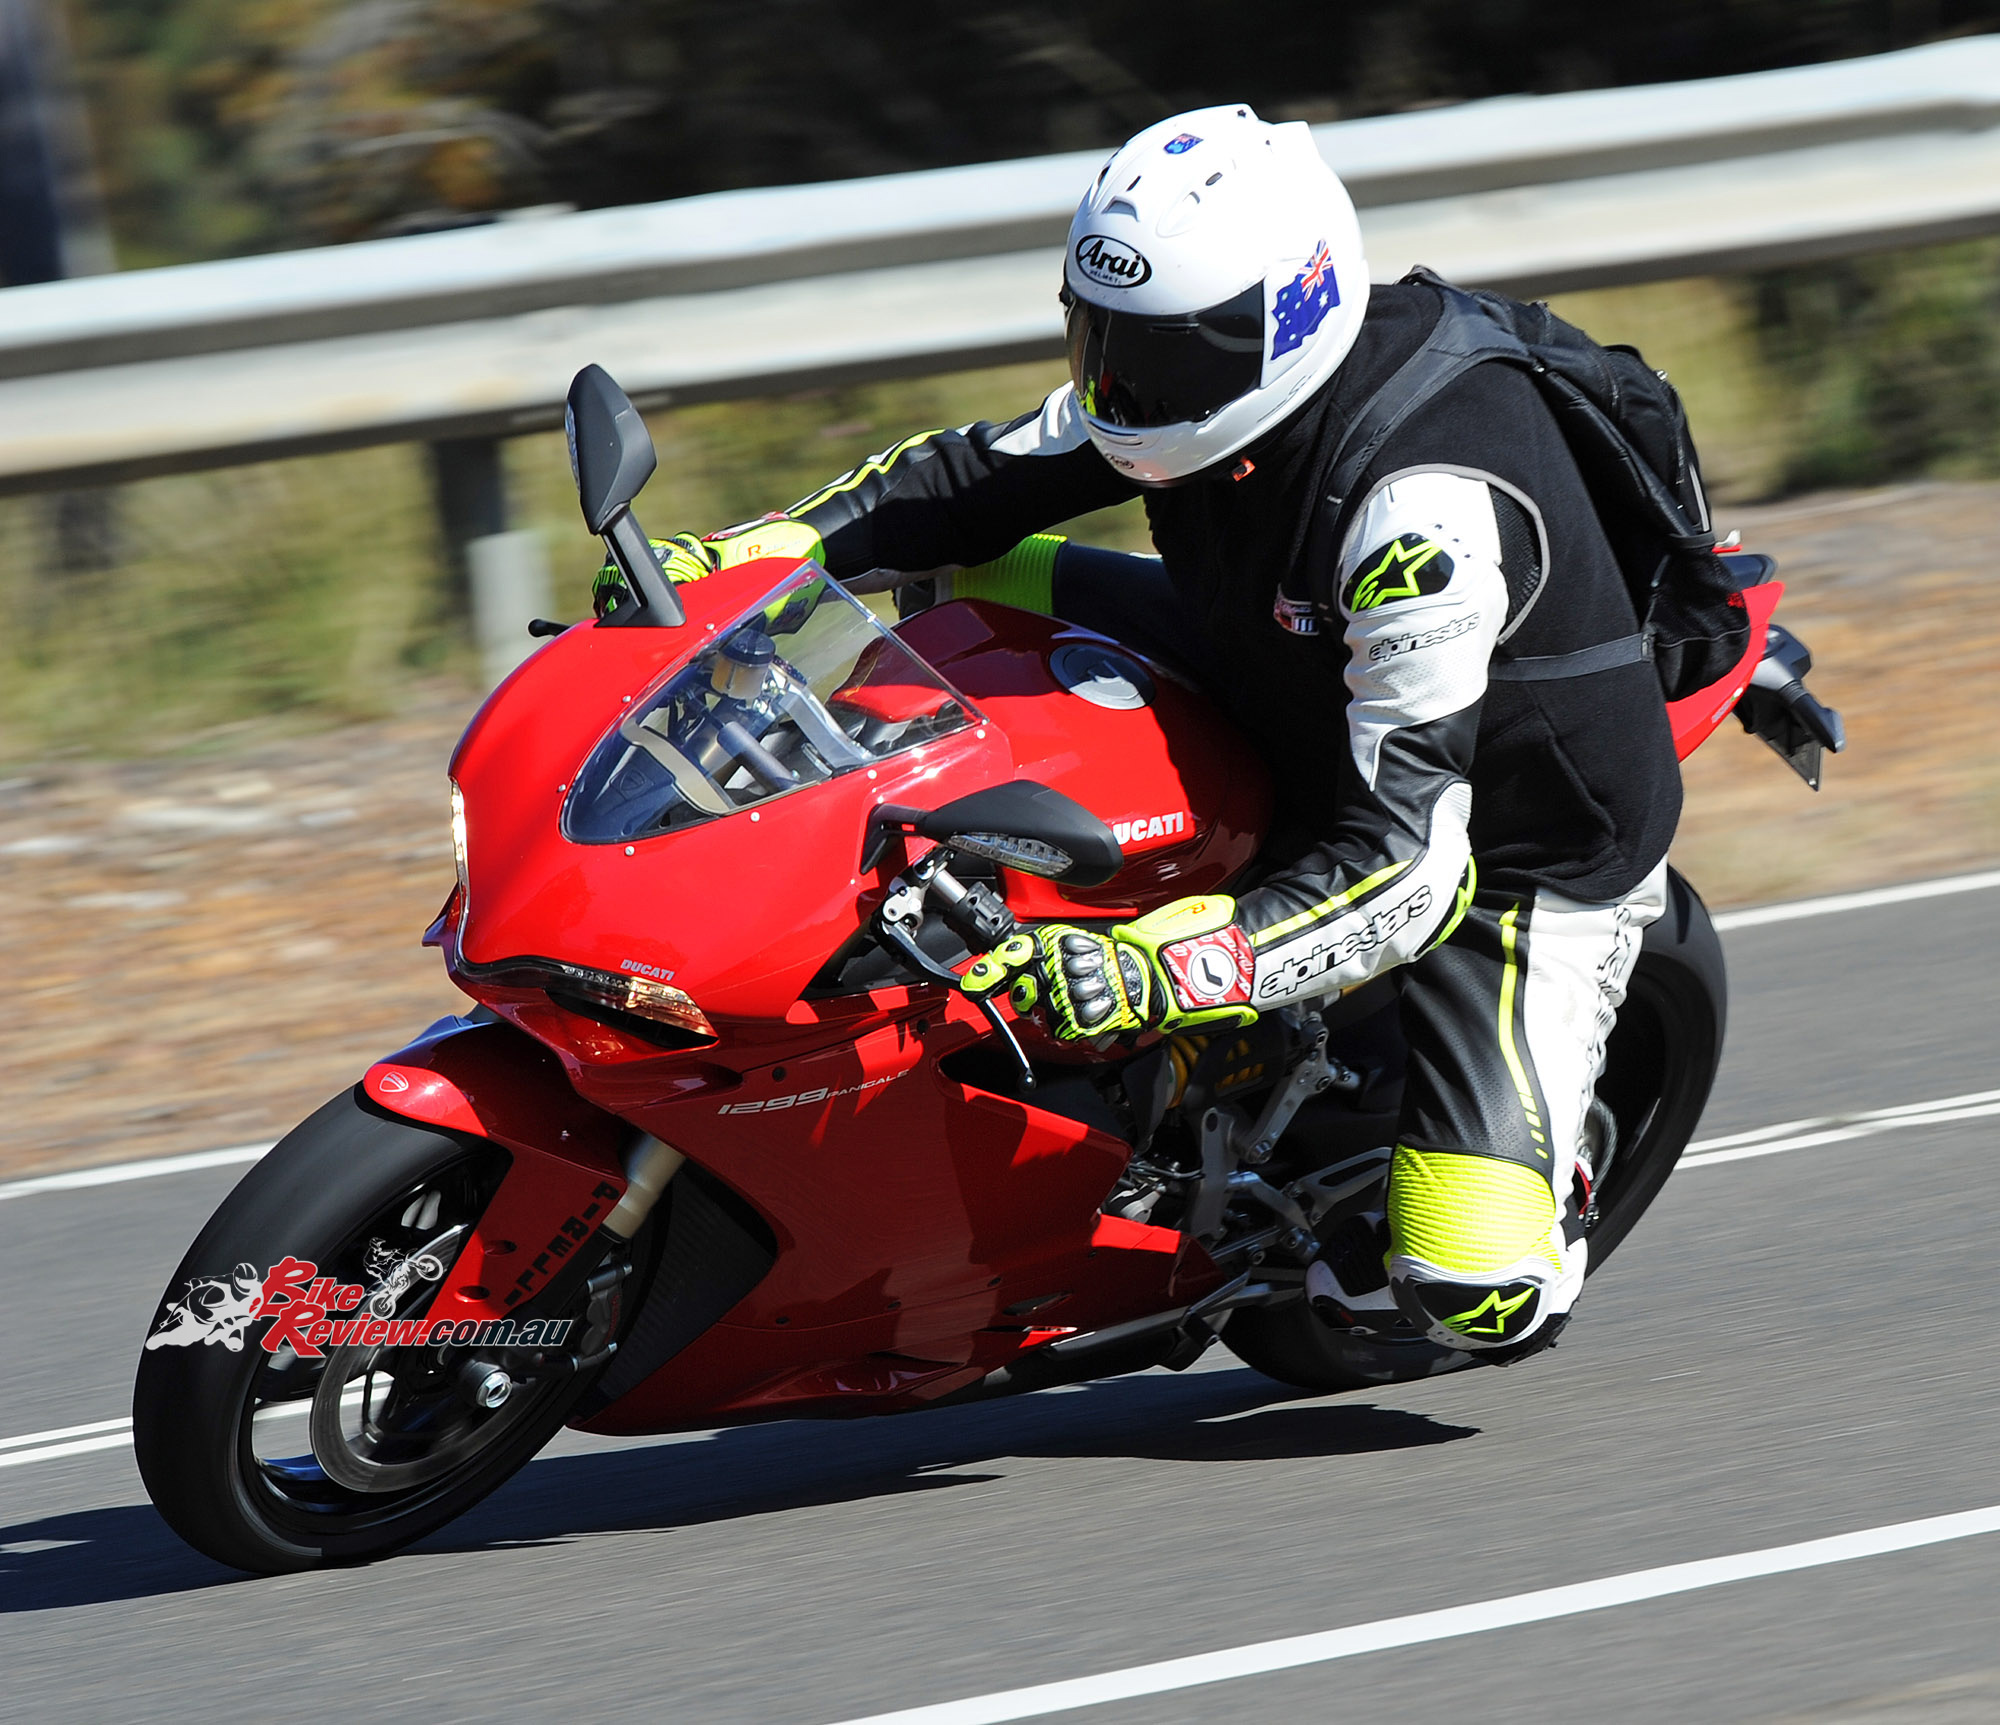 2016 ducati panigale 1299 review - bike review